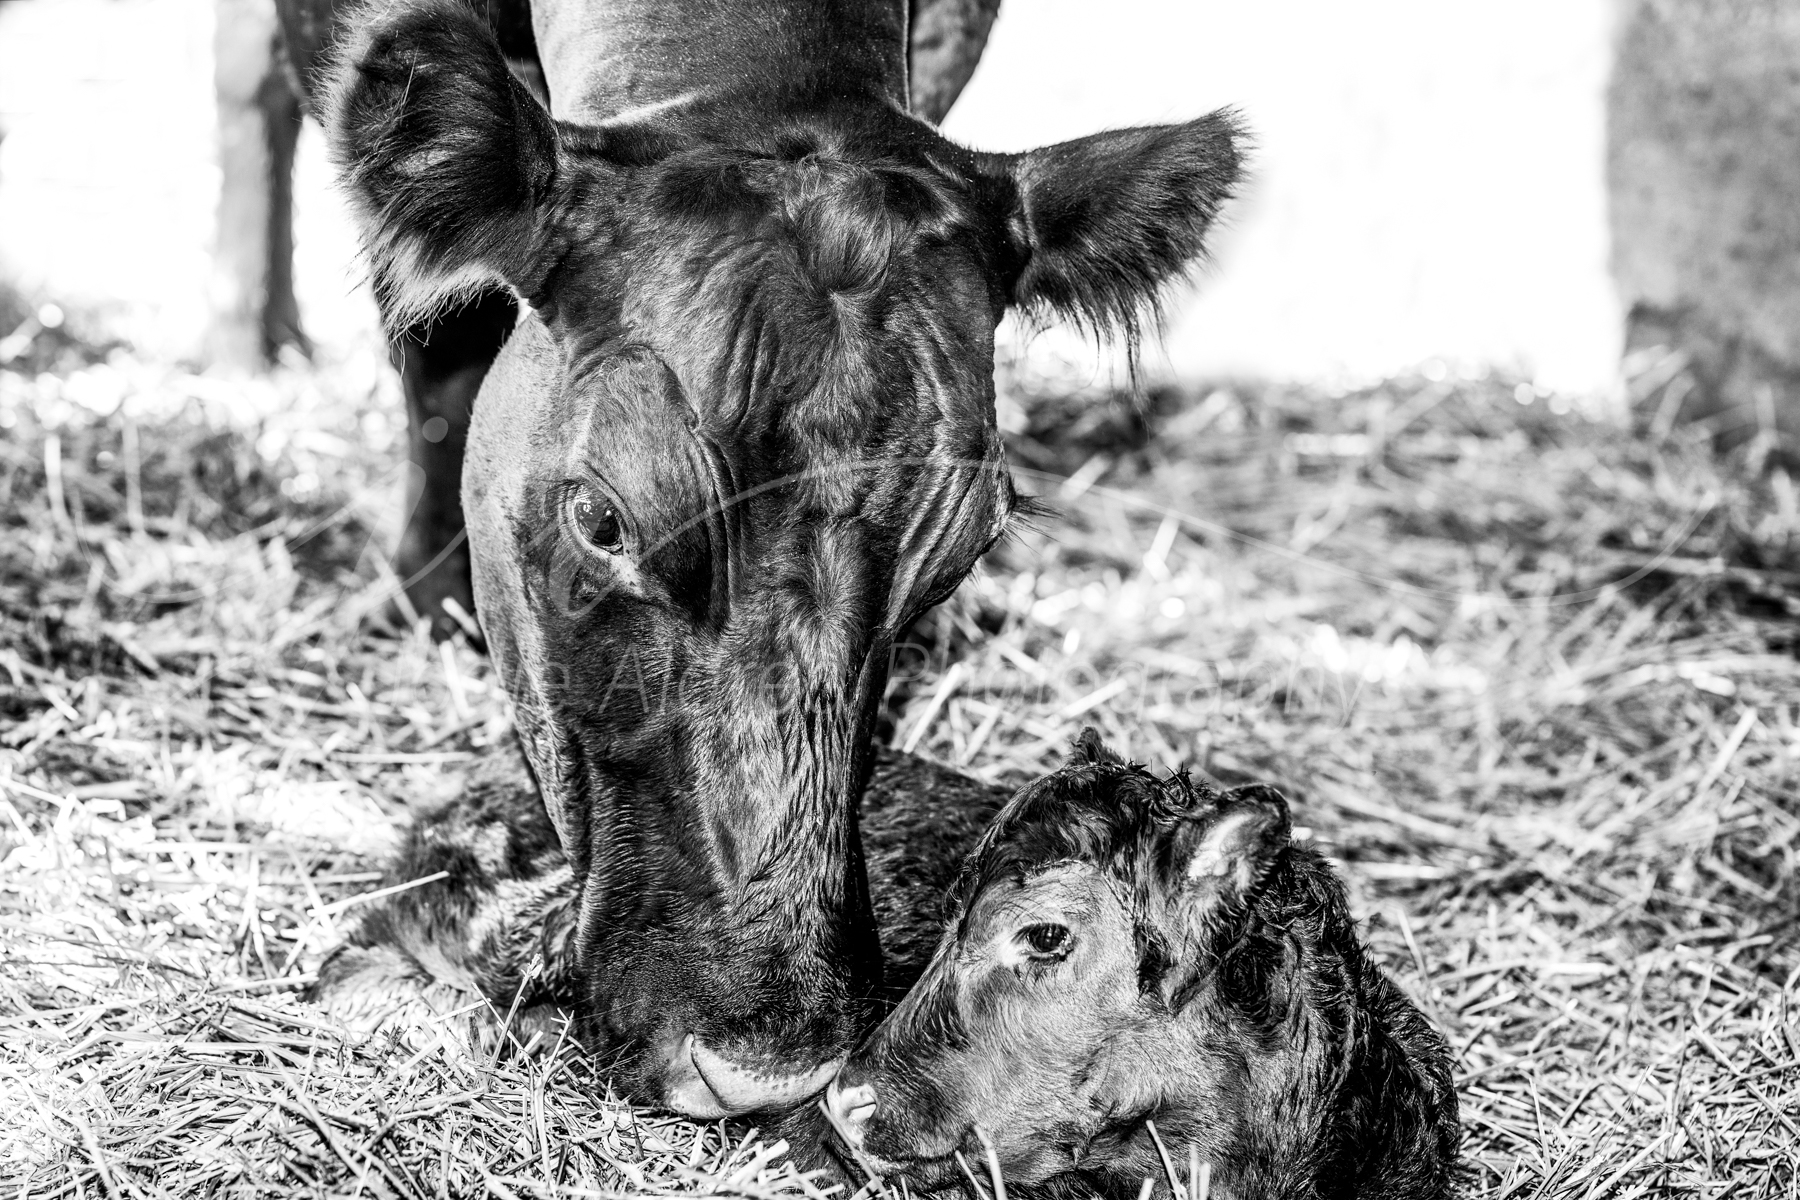 Jodie-Aldred-Photography-Ontario-Agriculture-Photographer-Farm-Black-White-Cow-Calf-Barn-Straw.jpg